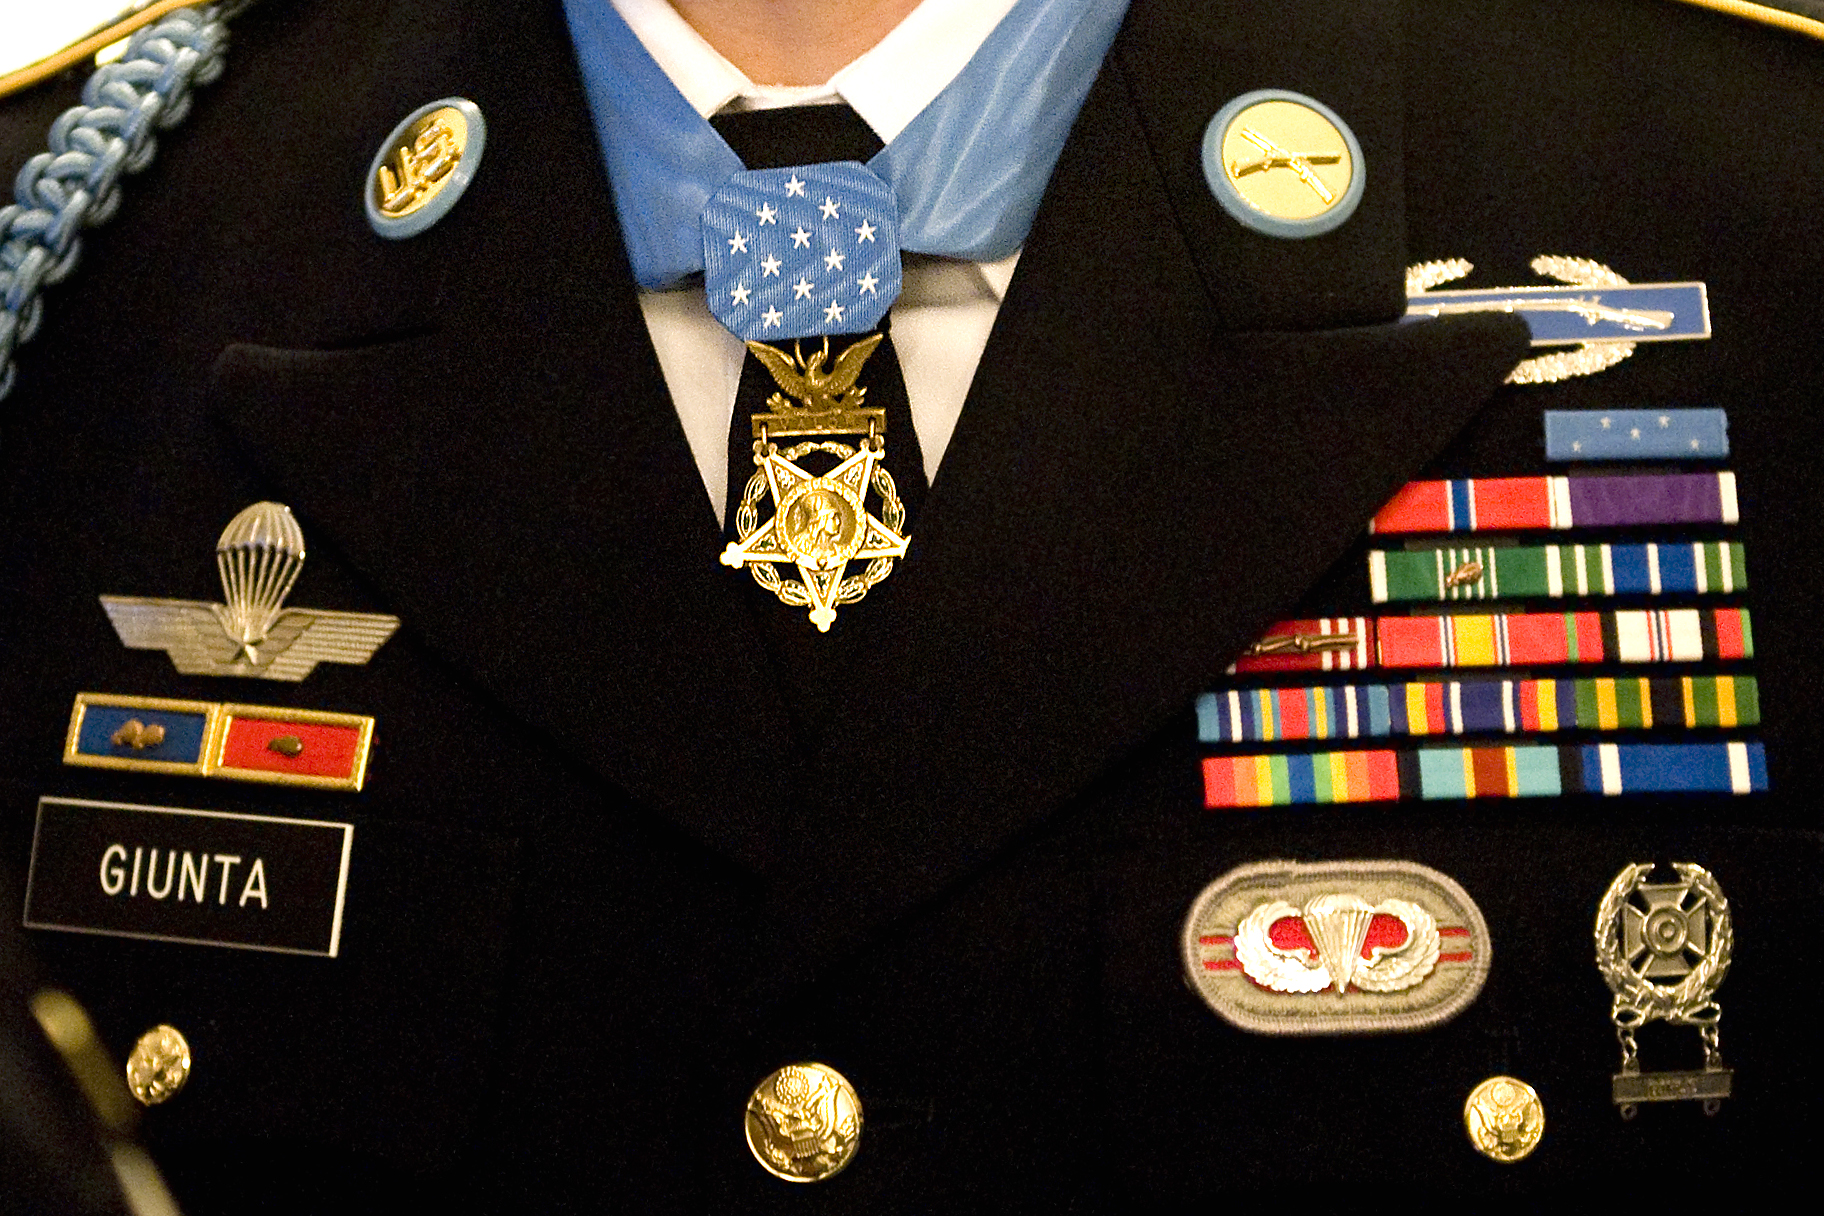 File:Close up of Salvatore Giunta's uniform with medals ...